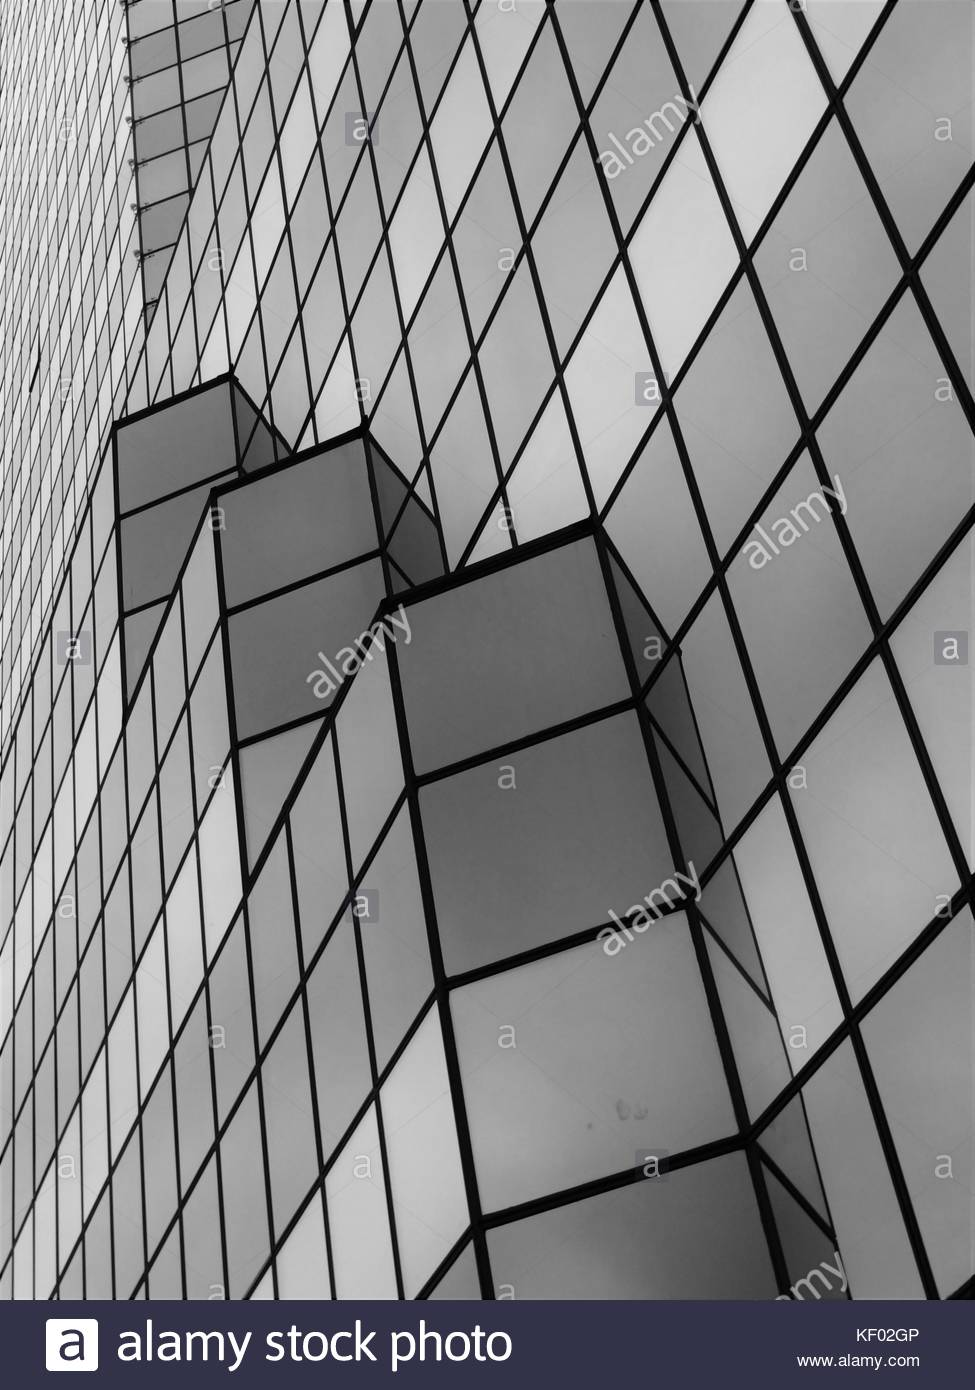 Minimalist B&W photo of skyscraper windows without reflections. - Stock Image